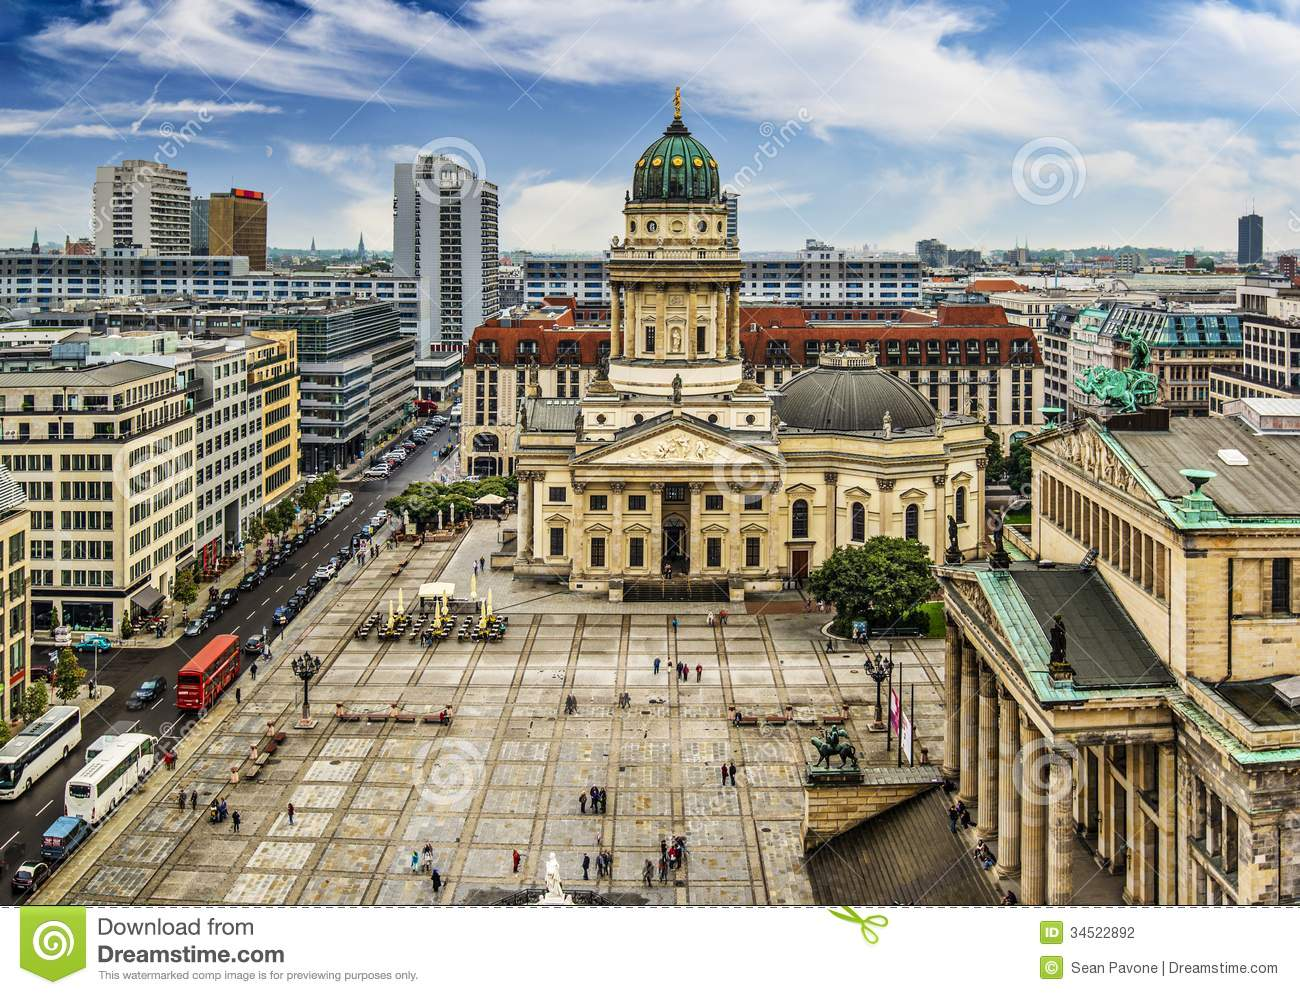 Black Friday In Germany Gendarmenmarkt Square In Berlin Stock Photo - Image: 34522892